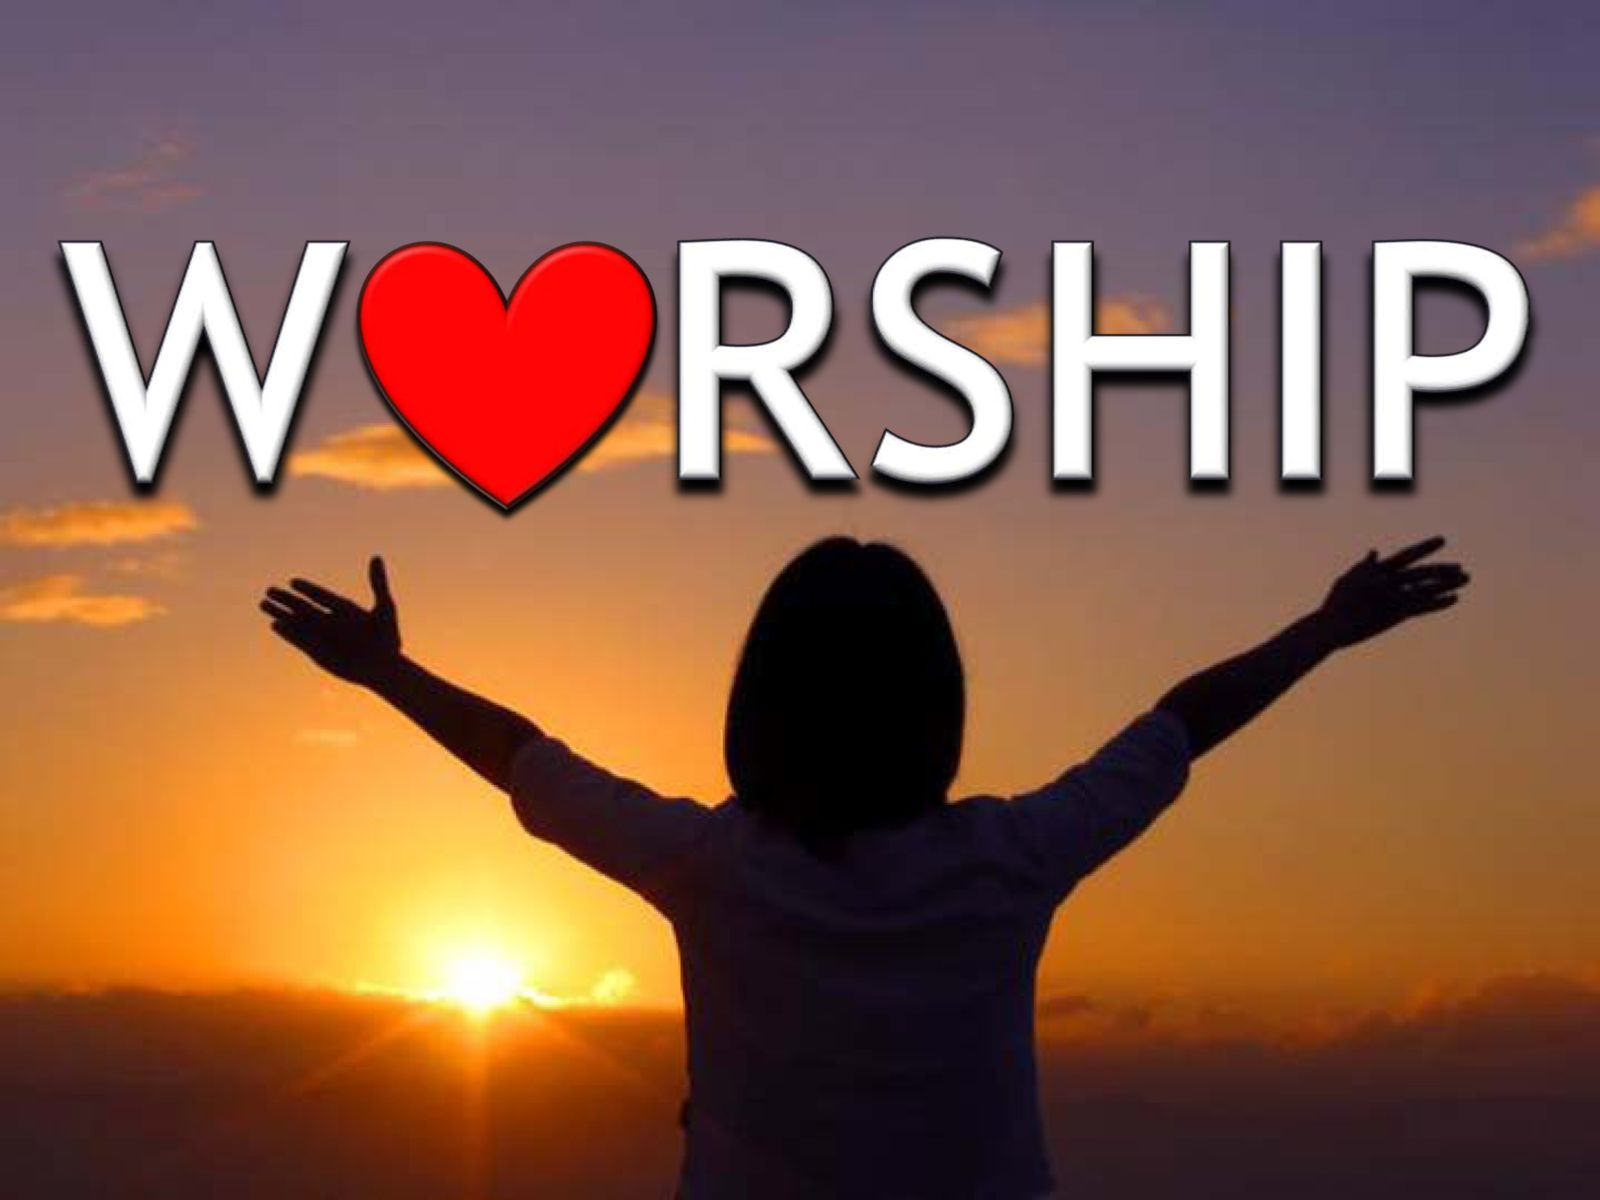 Indiana kosciusko county syracuse - The Churches In Kosciusko County Invite You To Join Them Whether You Enjoy A Traditional Worship Experience Or A Contemporary One